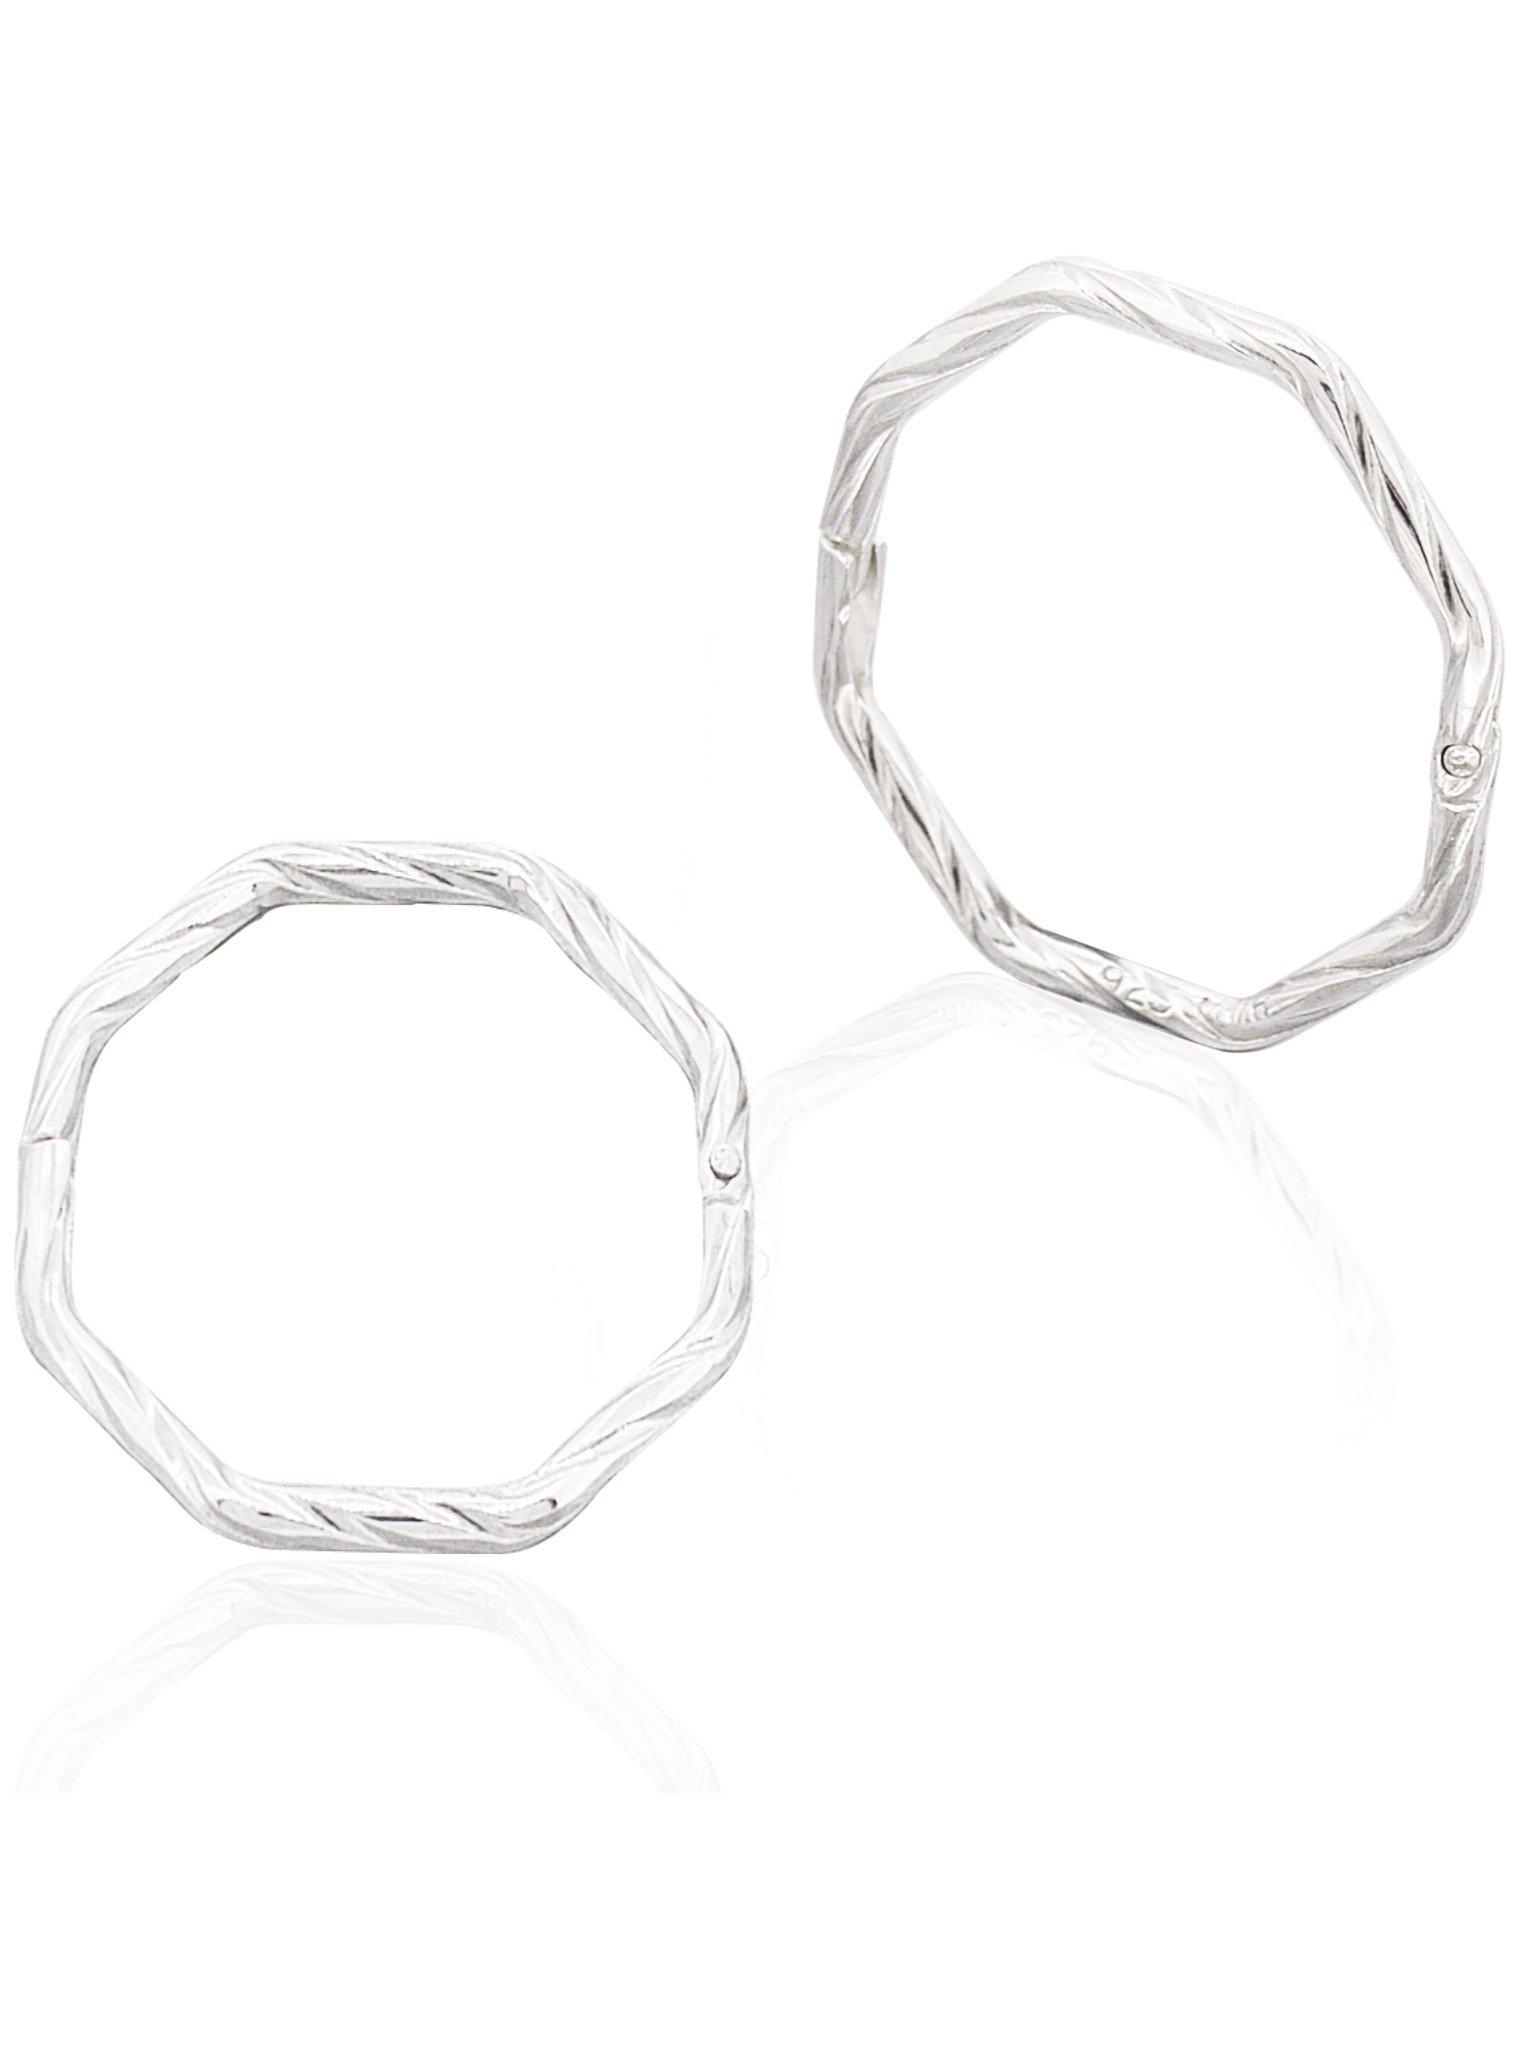 Everyday Octagonal Sleeper Hoop Earrings in Silver